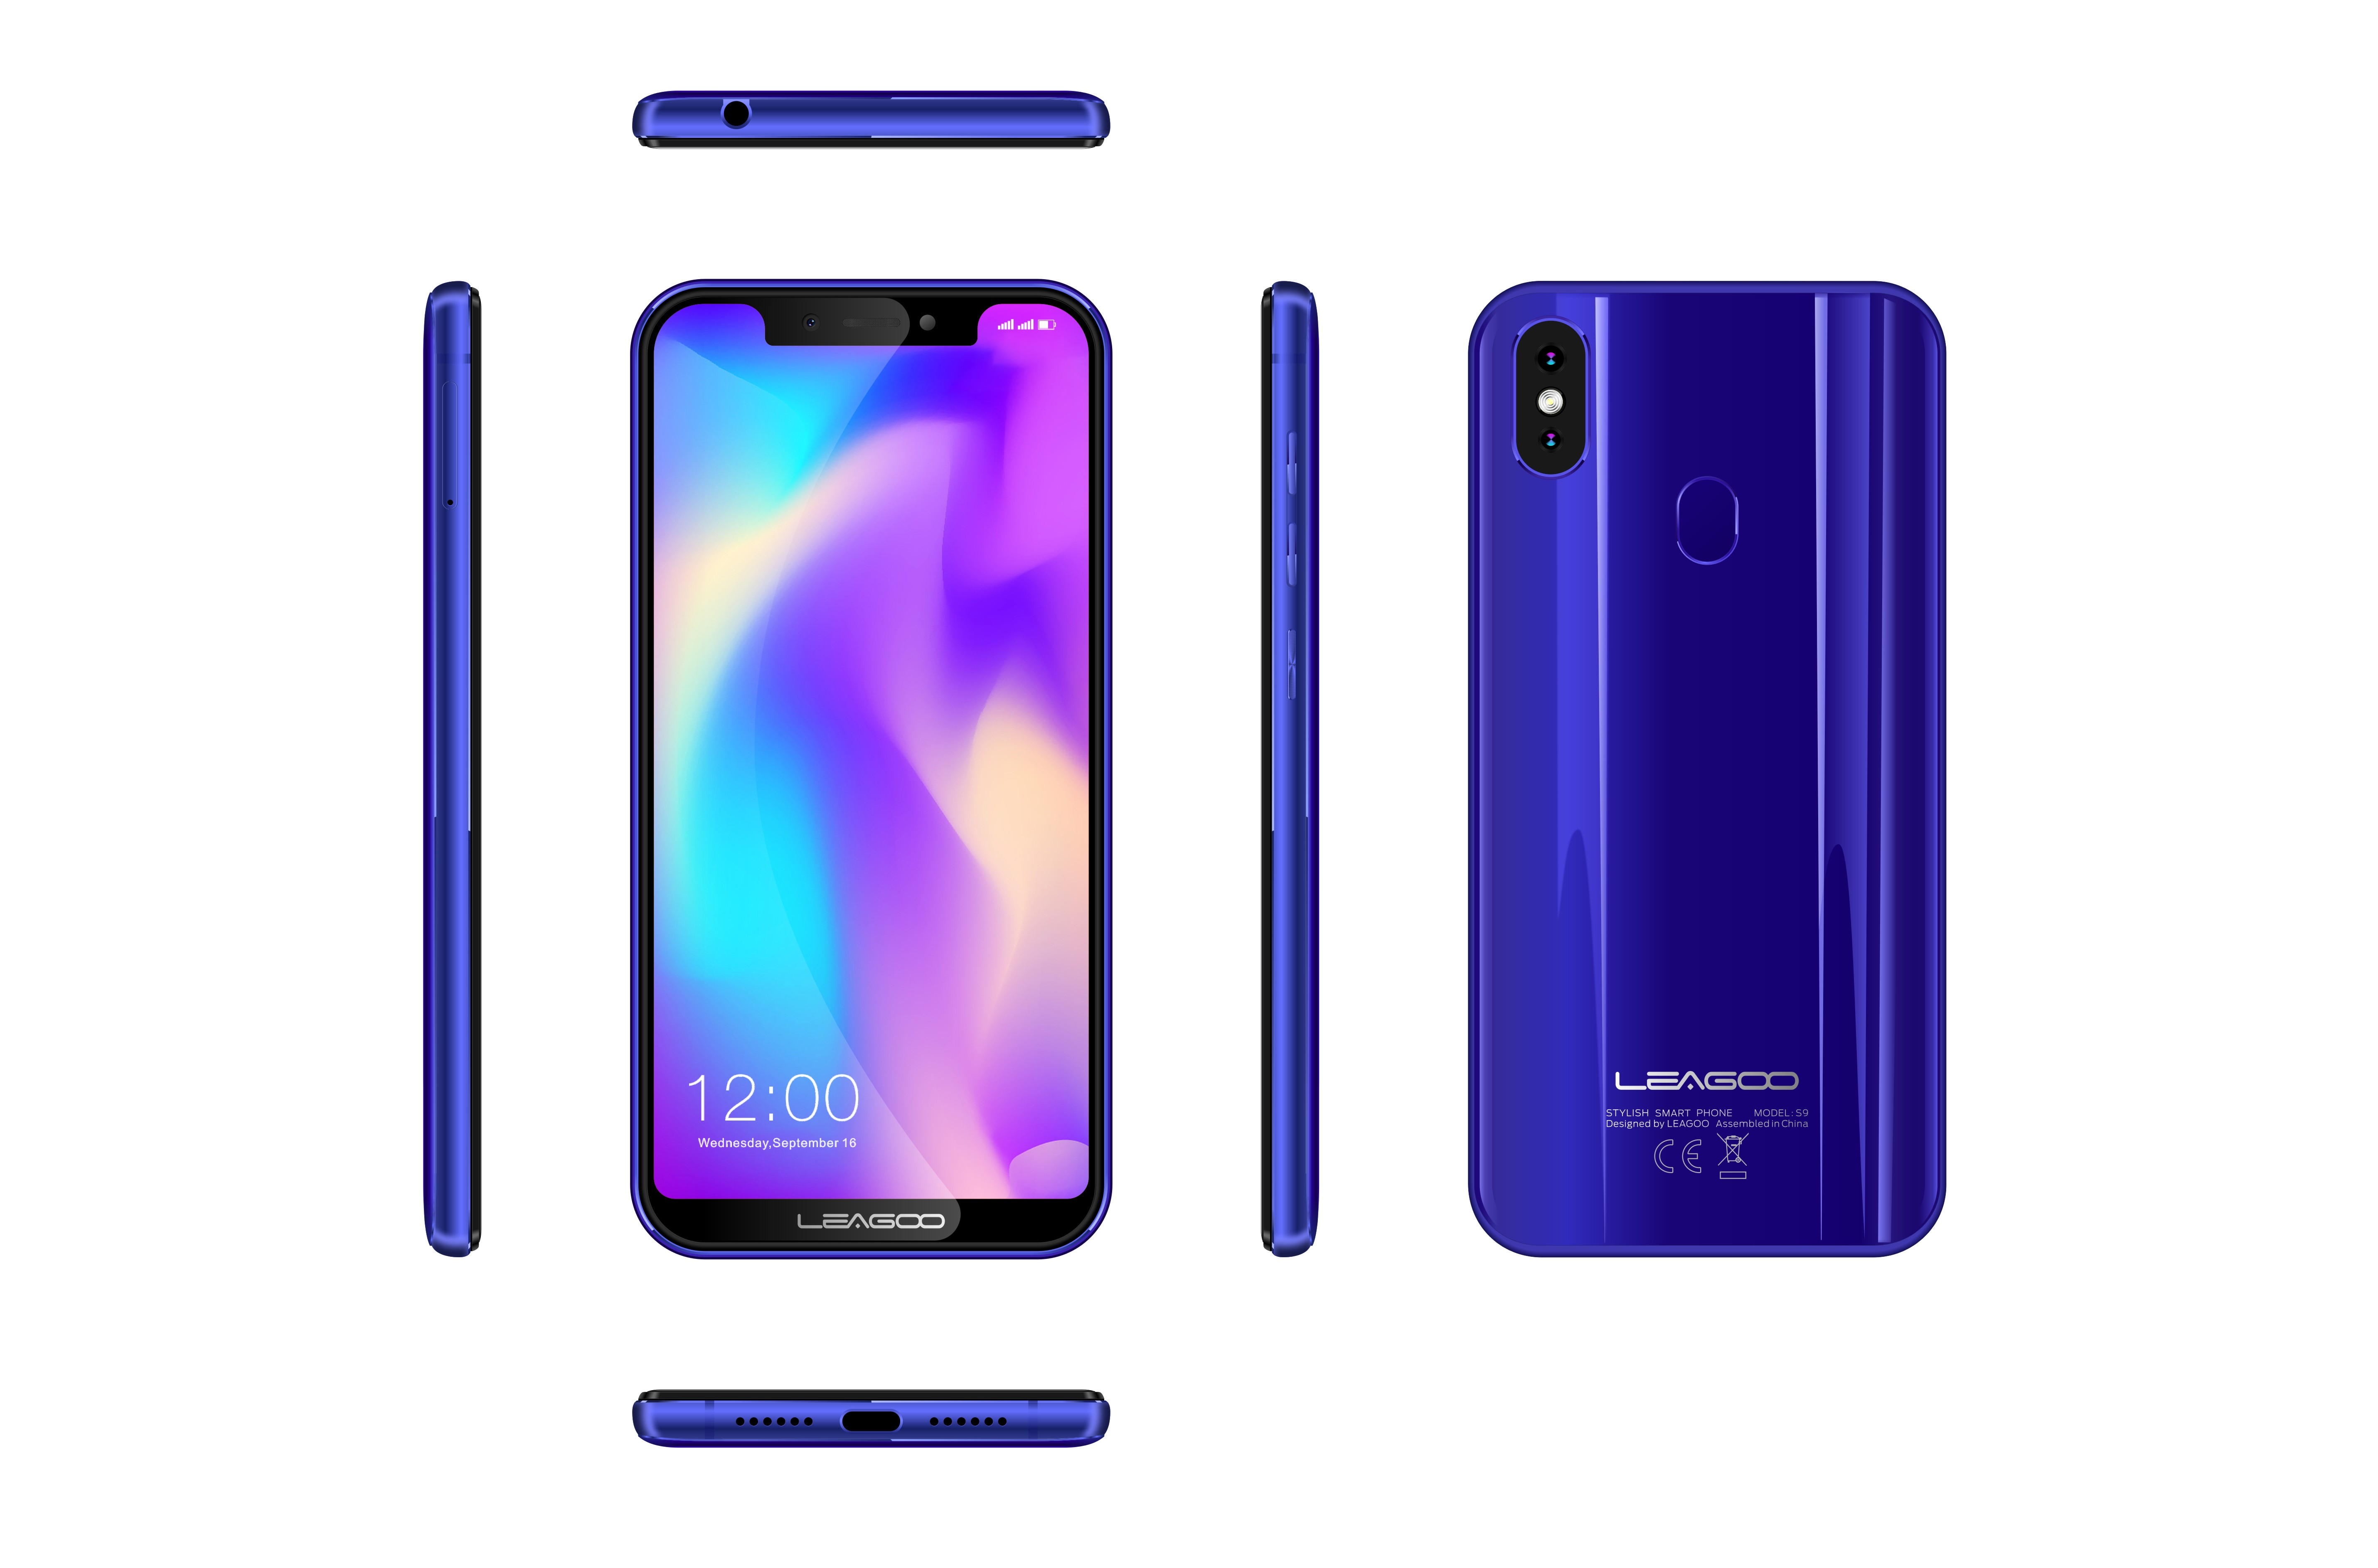 Leagoo S9 - Noticia